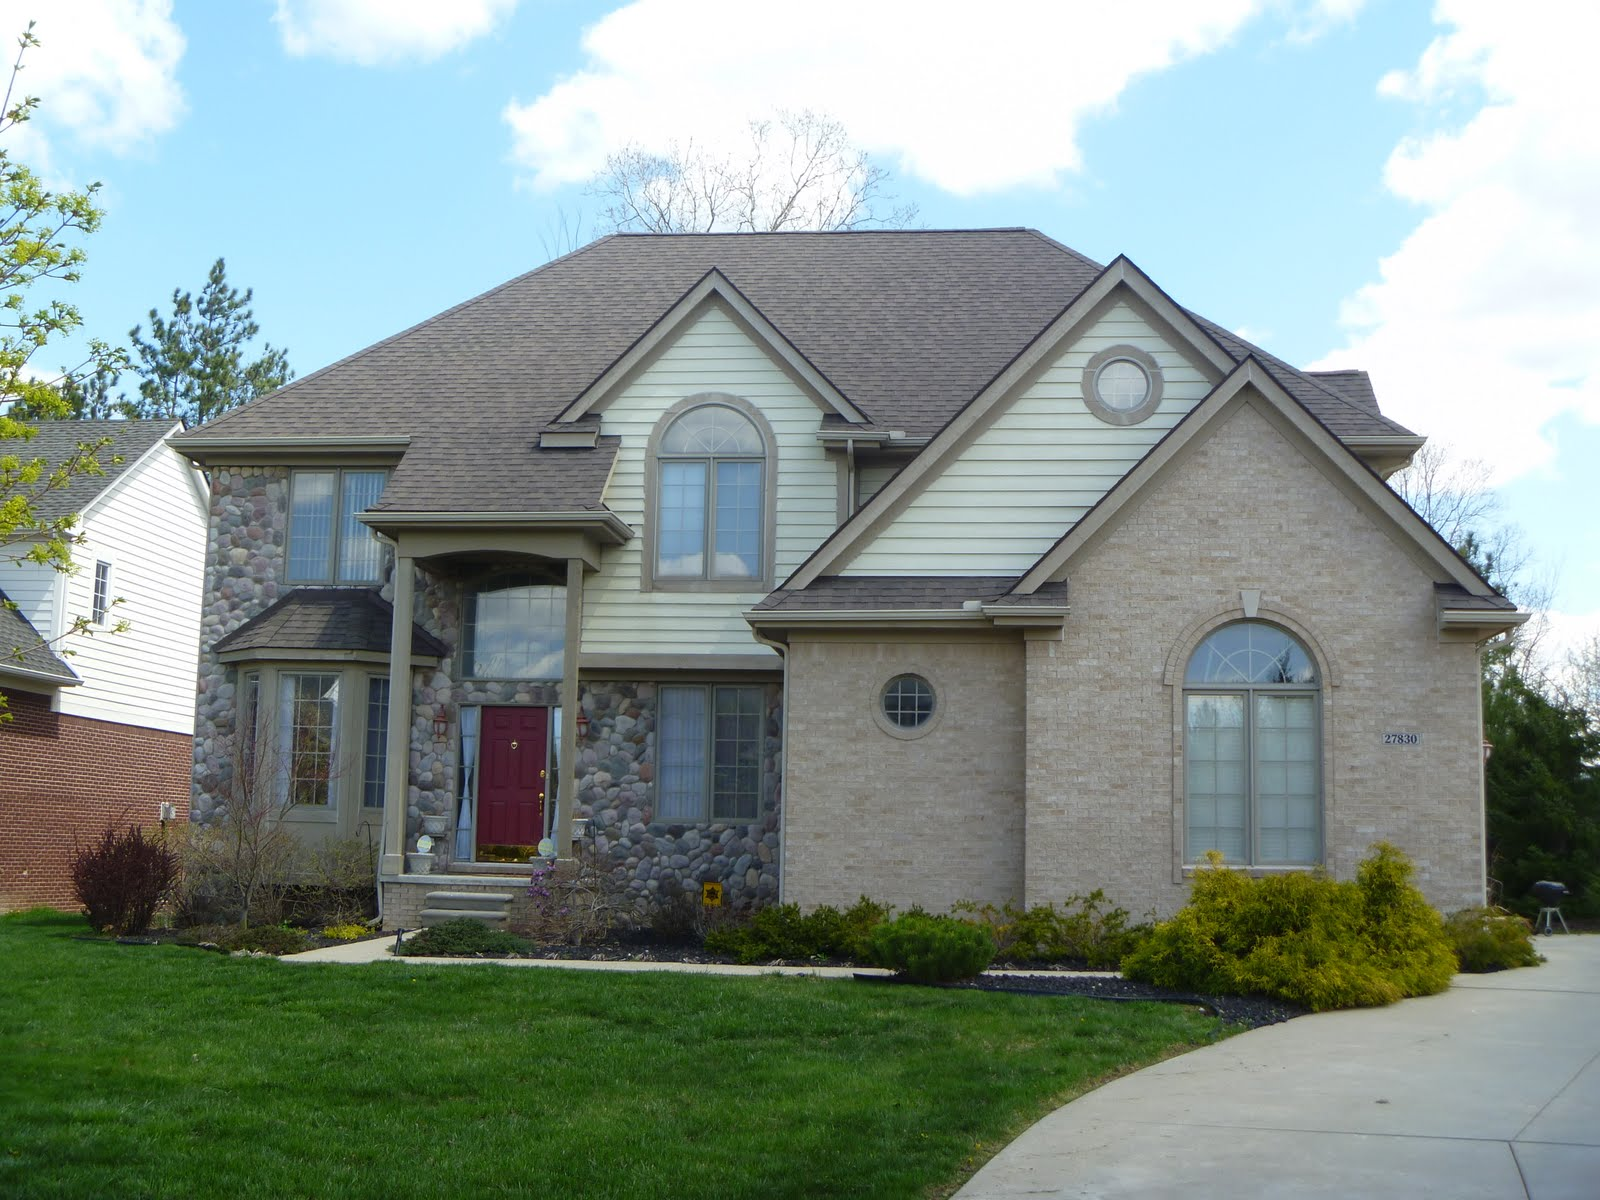 Homes for sale in farmington hills mi blog subdivision for Homes for for sale